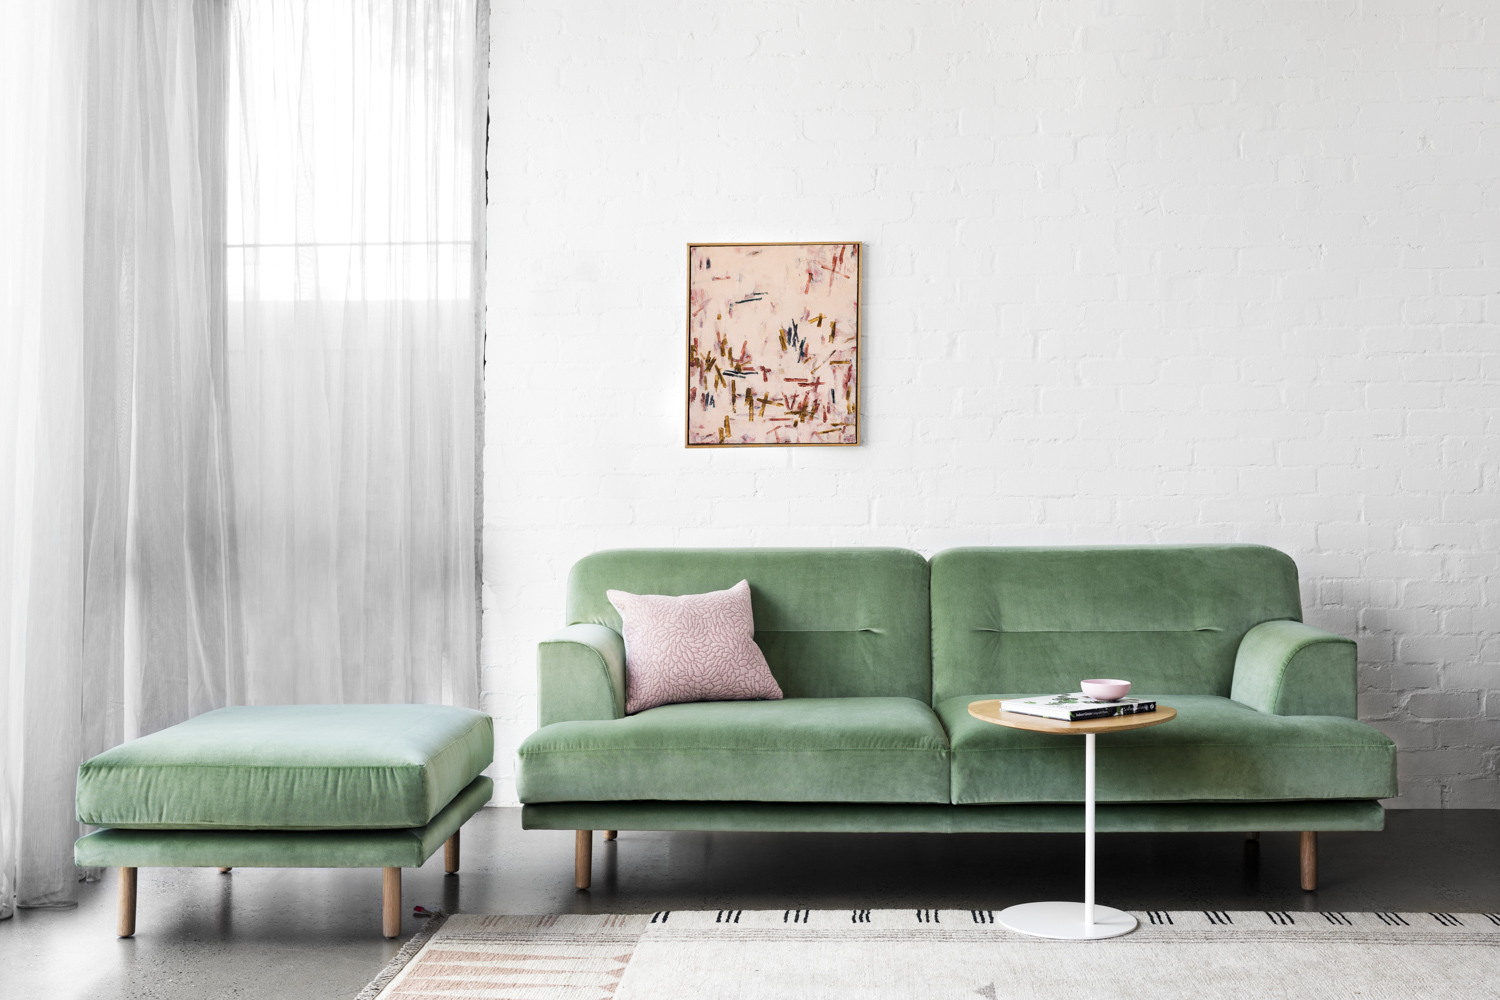 Camille ottoman - On its own or to accompany your sofa, it is inspired by a love of Scandinavian style and modernist aesthetics.